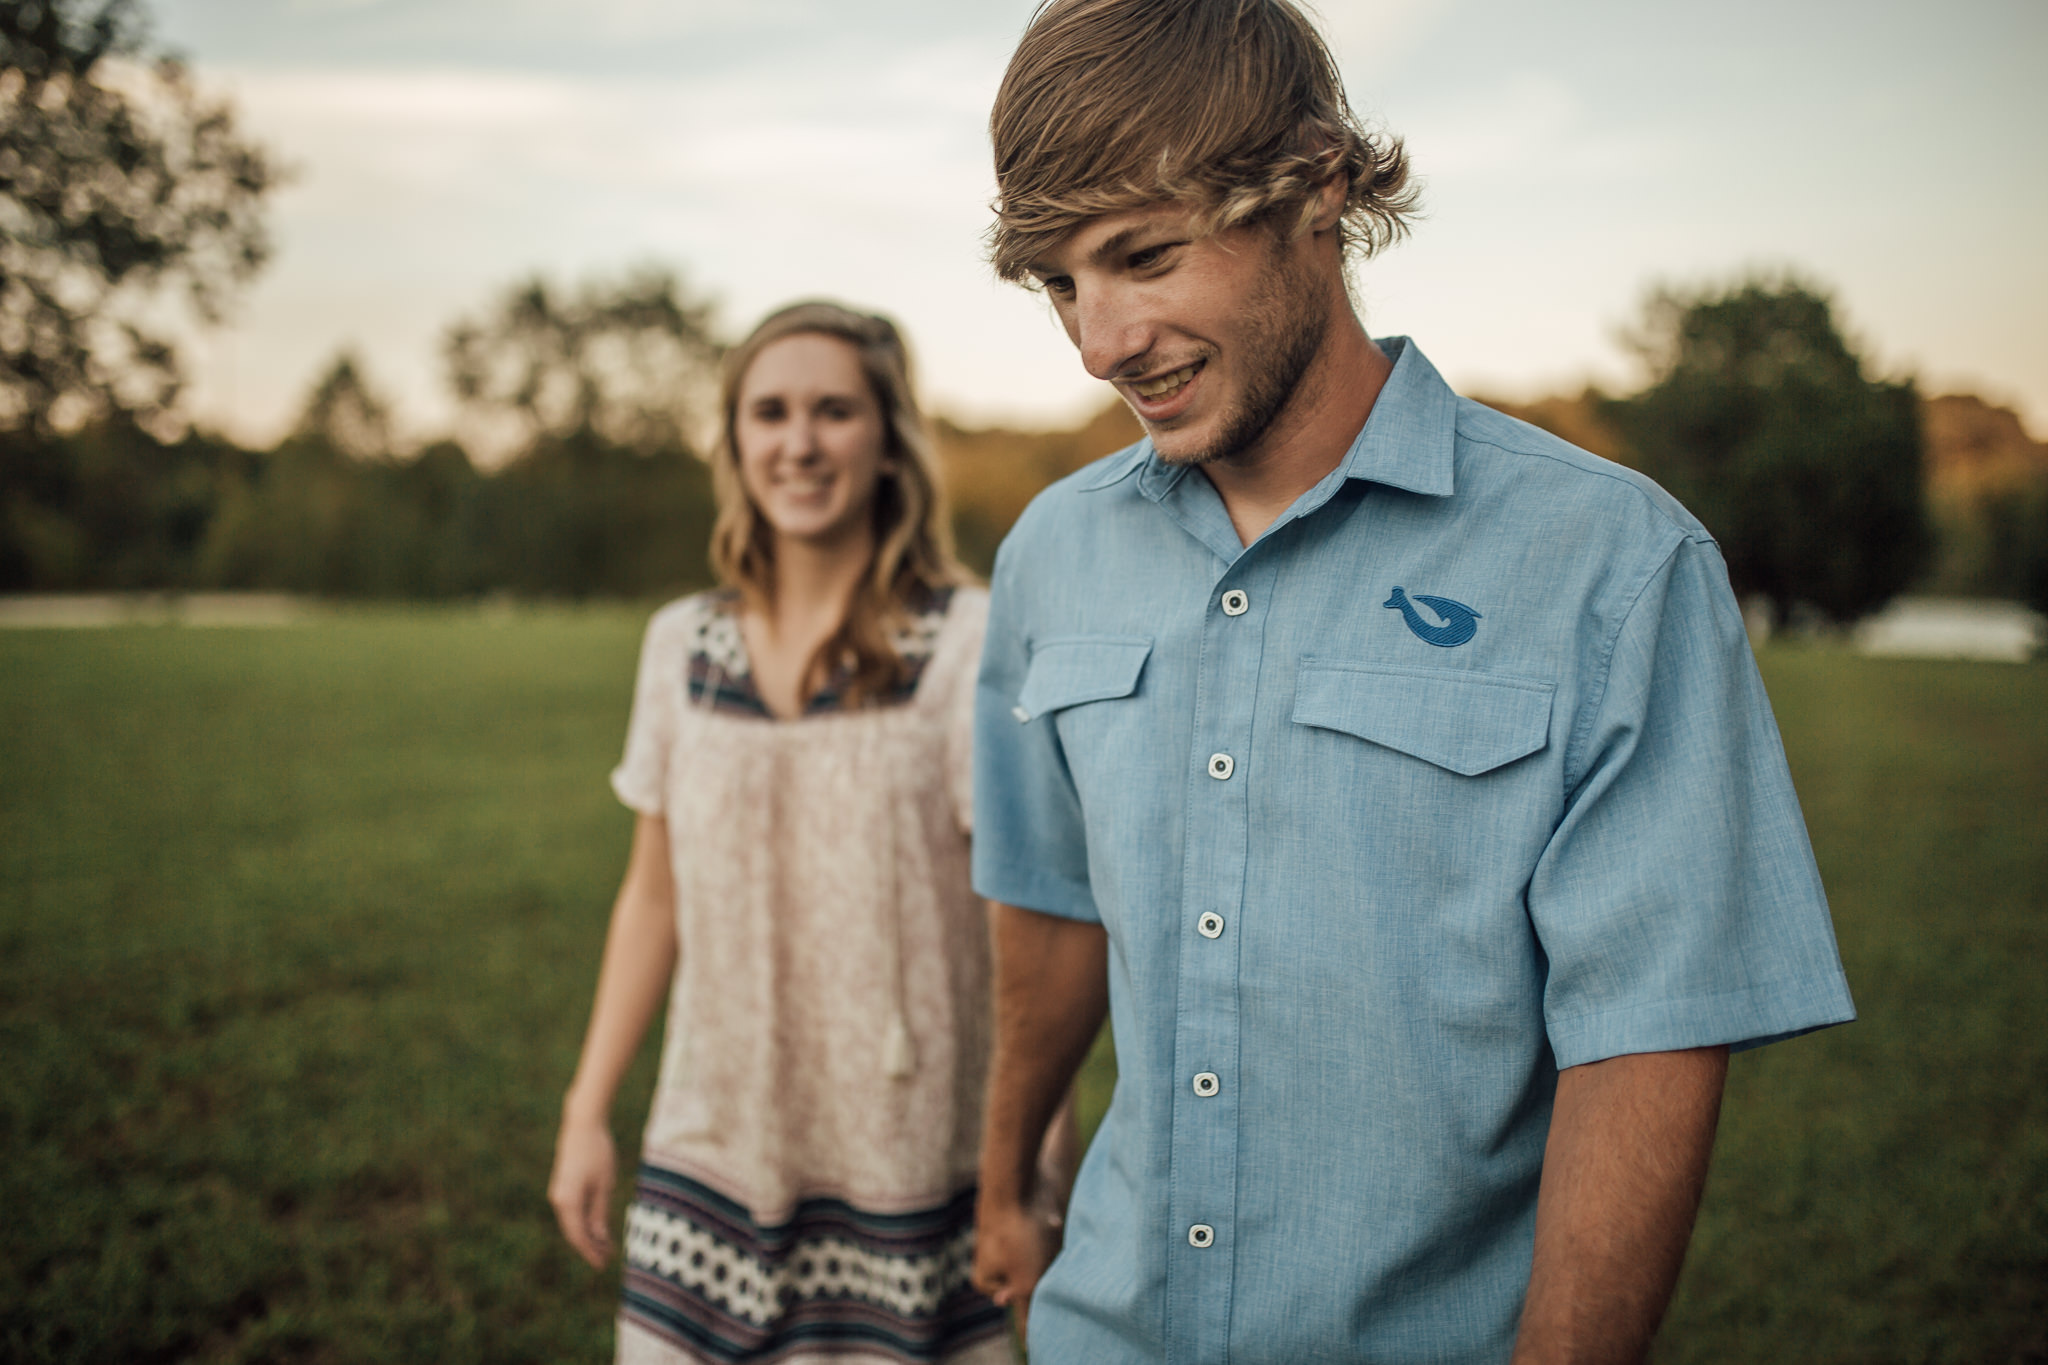 cassie-cook-photography-shelby-farms-engagment-pictures-memphis-wedding-photographer-551.jpg